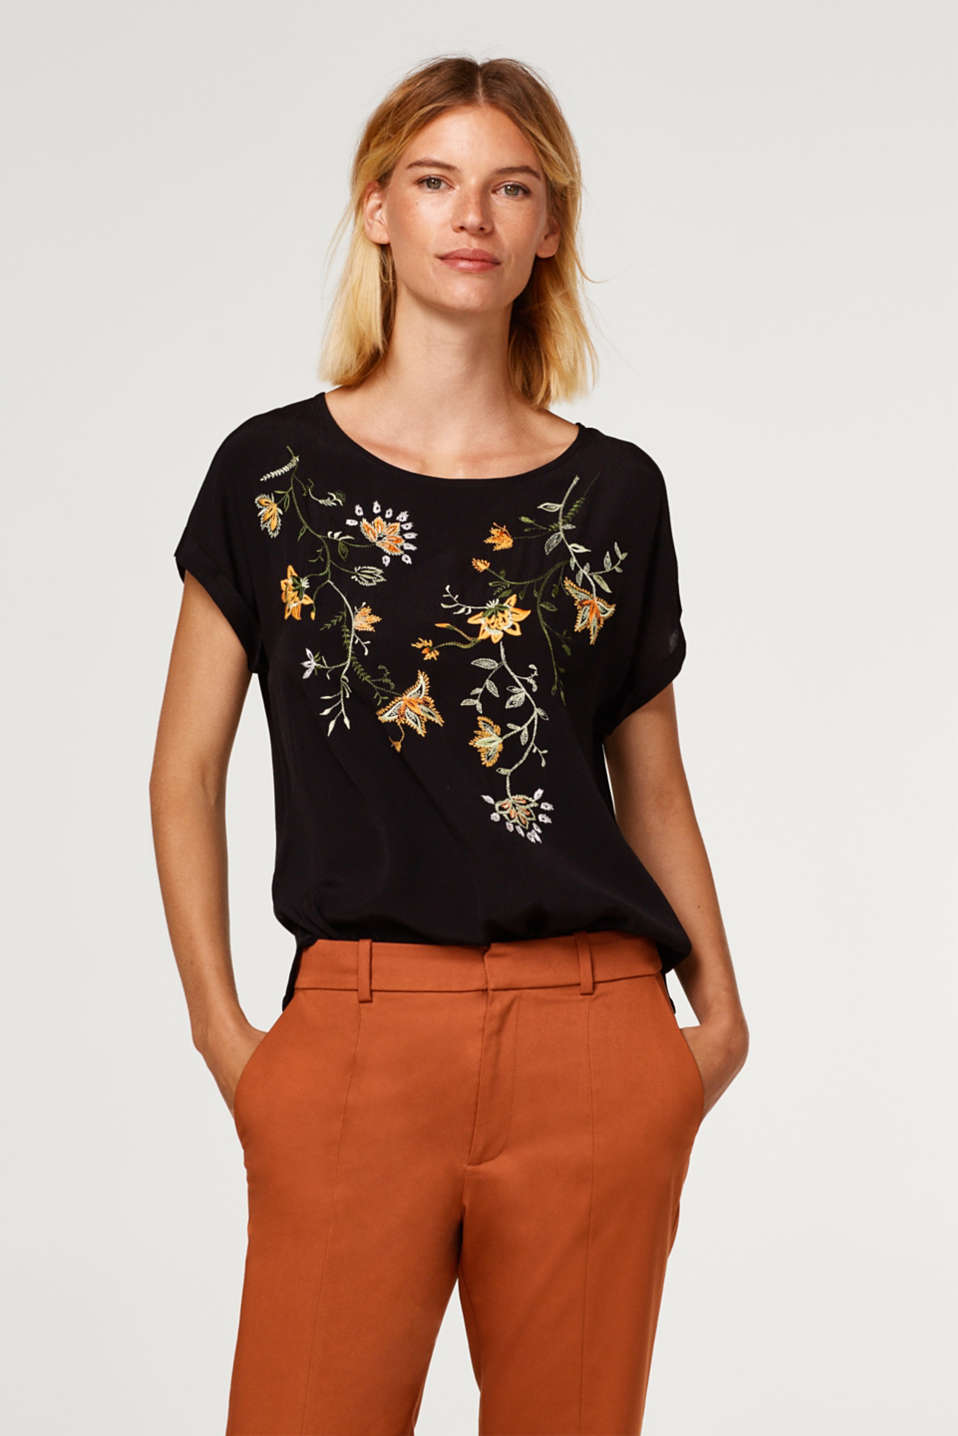 Esprit - Blouse top with floral embroidery